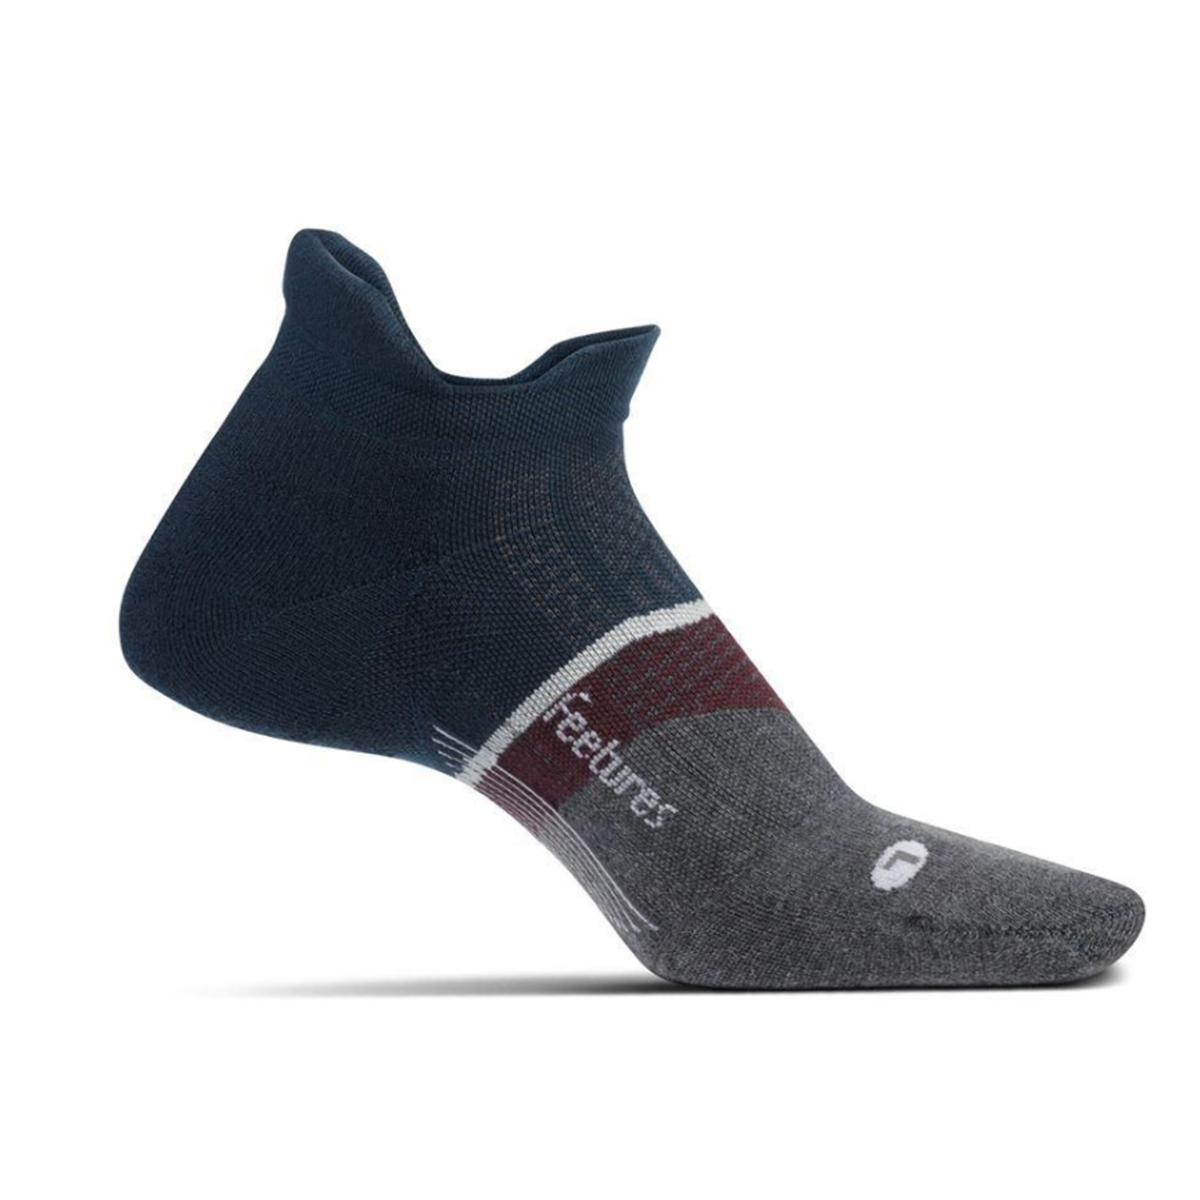 Feetures Elite Max Cushion No Show Tab Socks - Color: French Navy - Size: S, French Navy, large, image 1